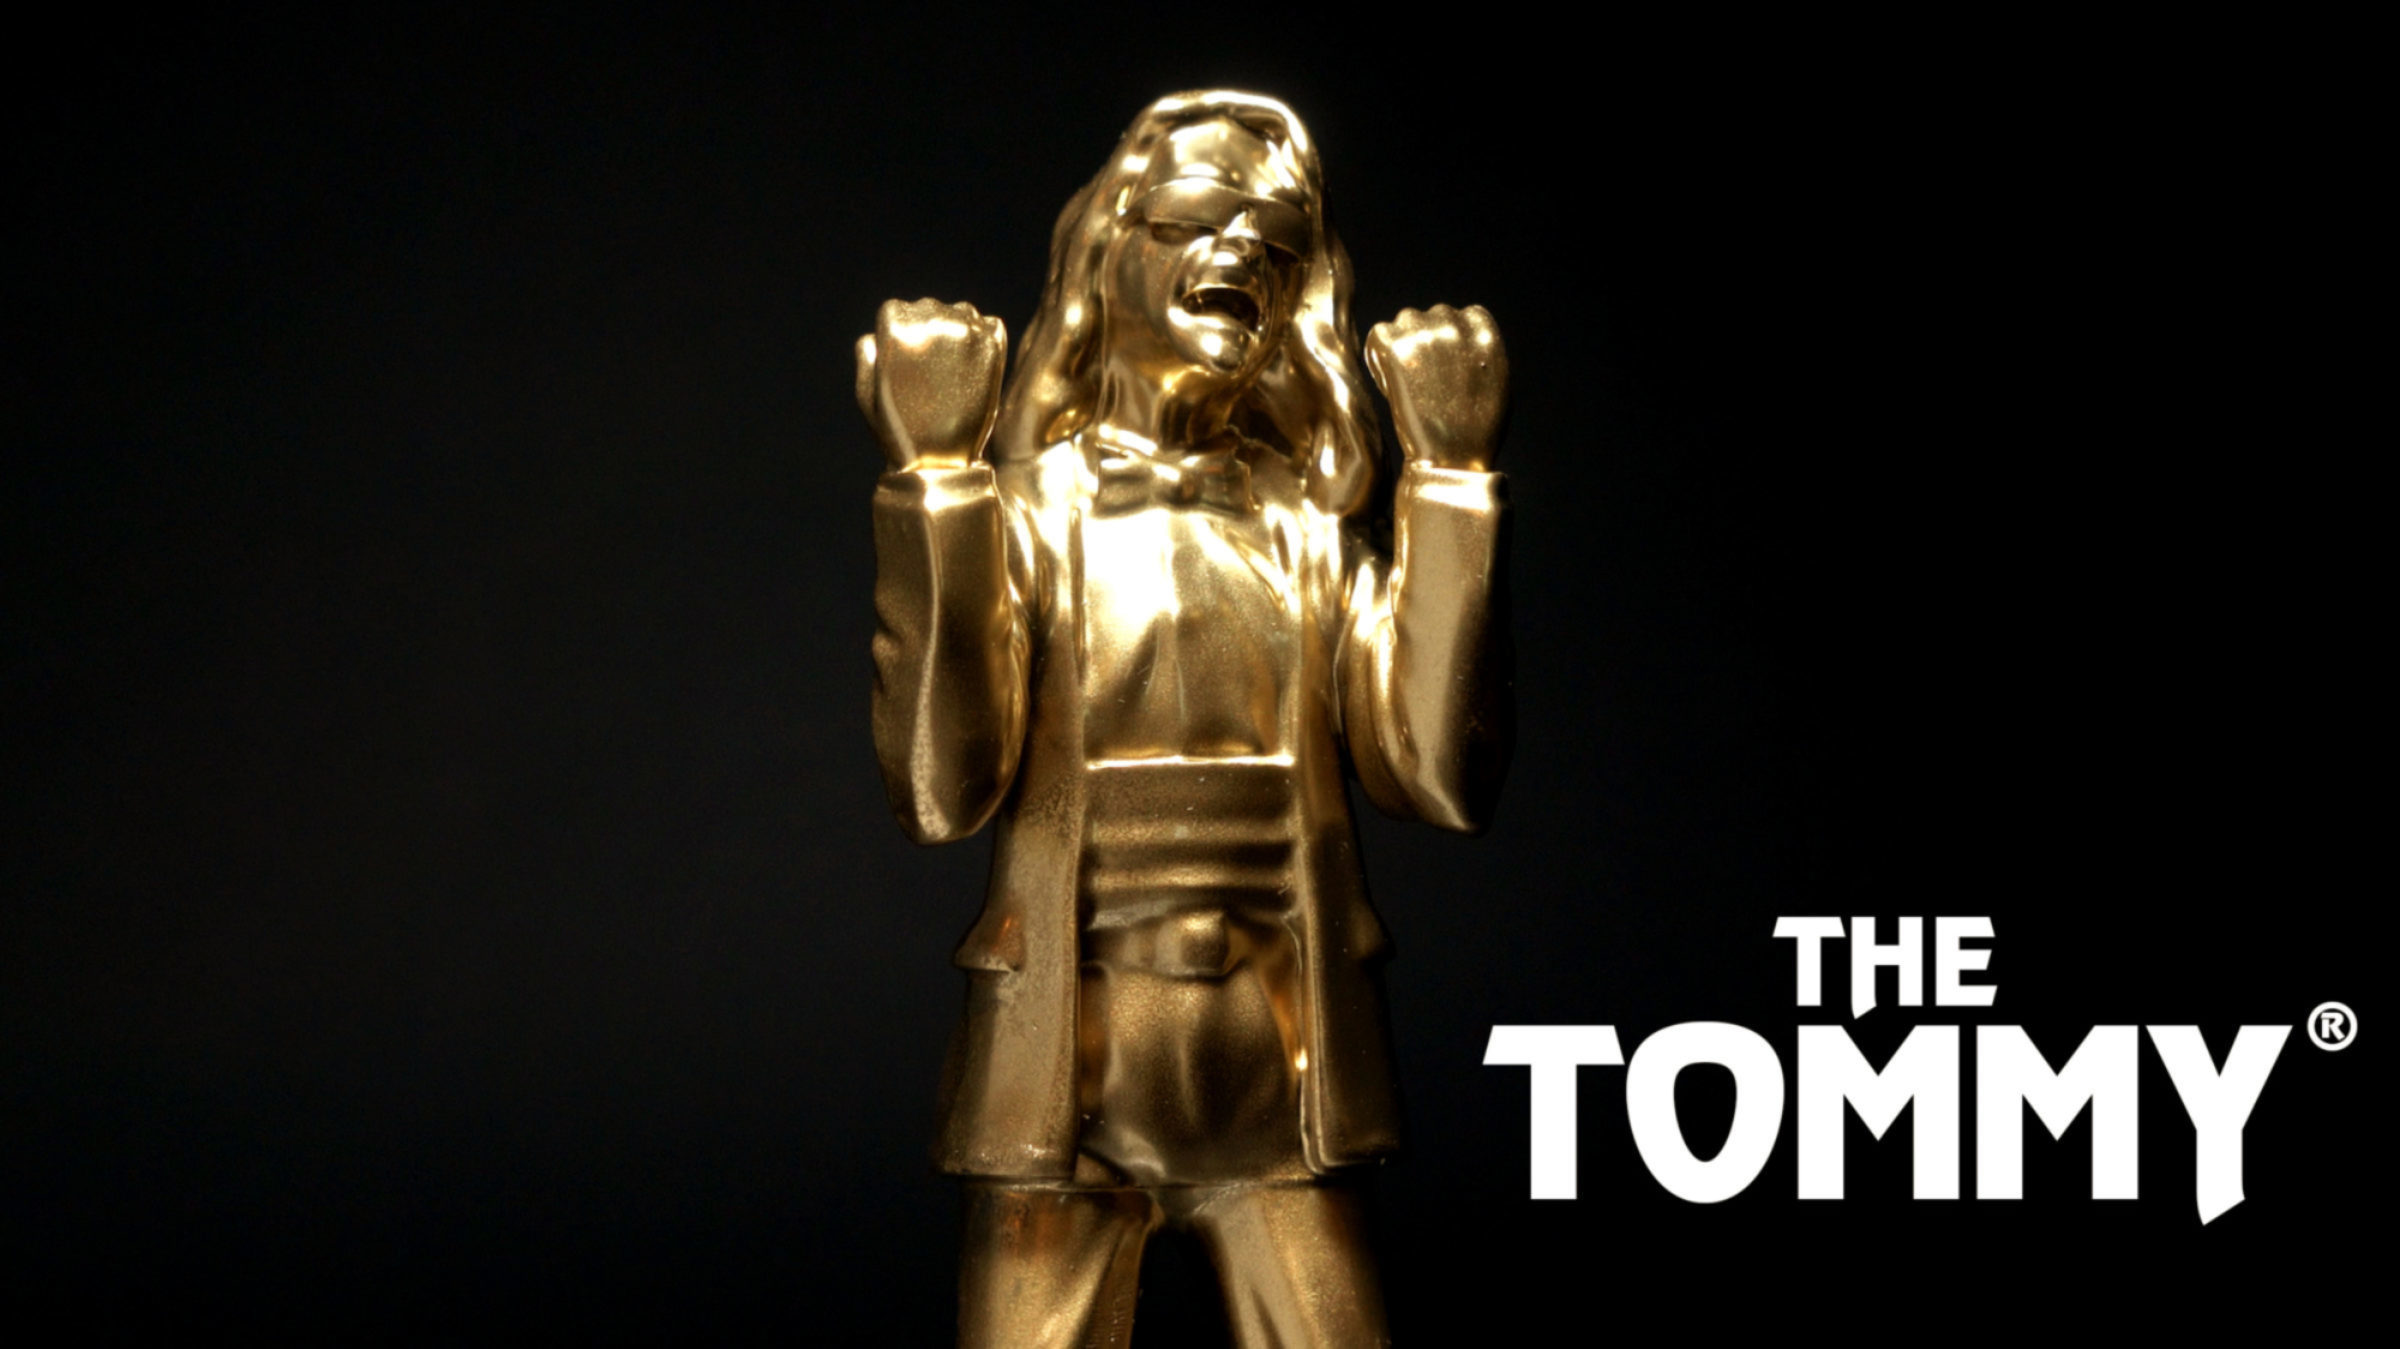 Dsa Tv30 The Tommy Award Thumbnail 3140X1764 Mt V01